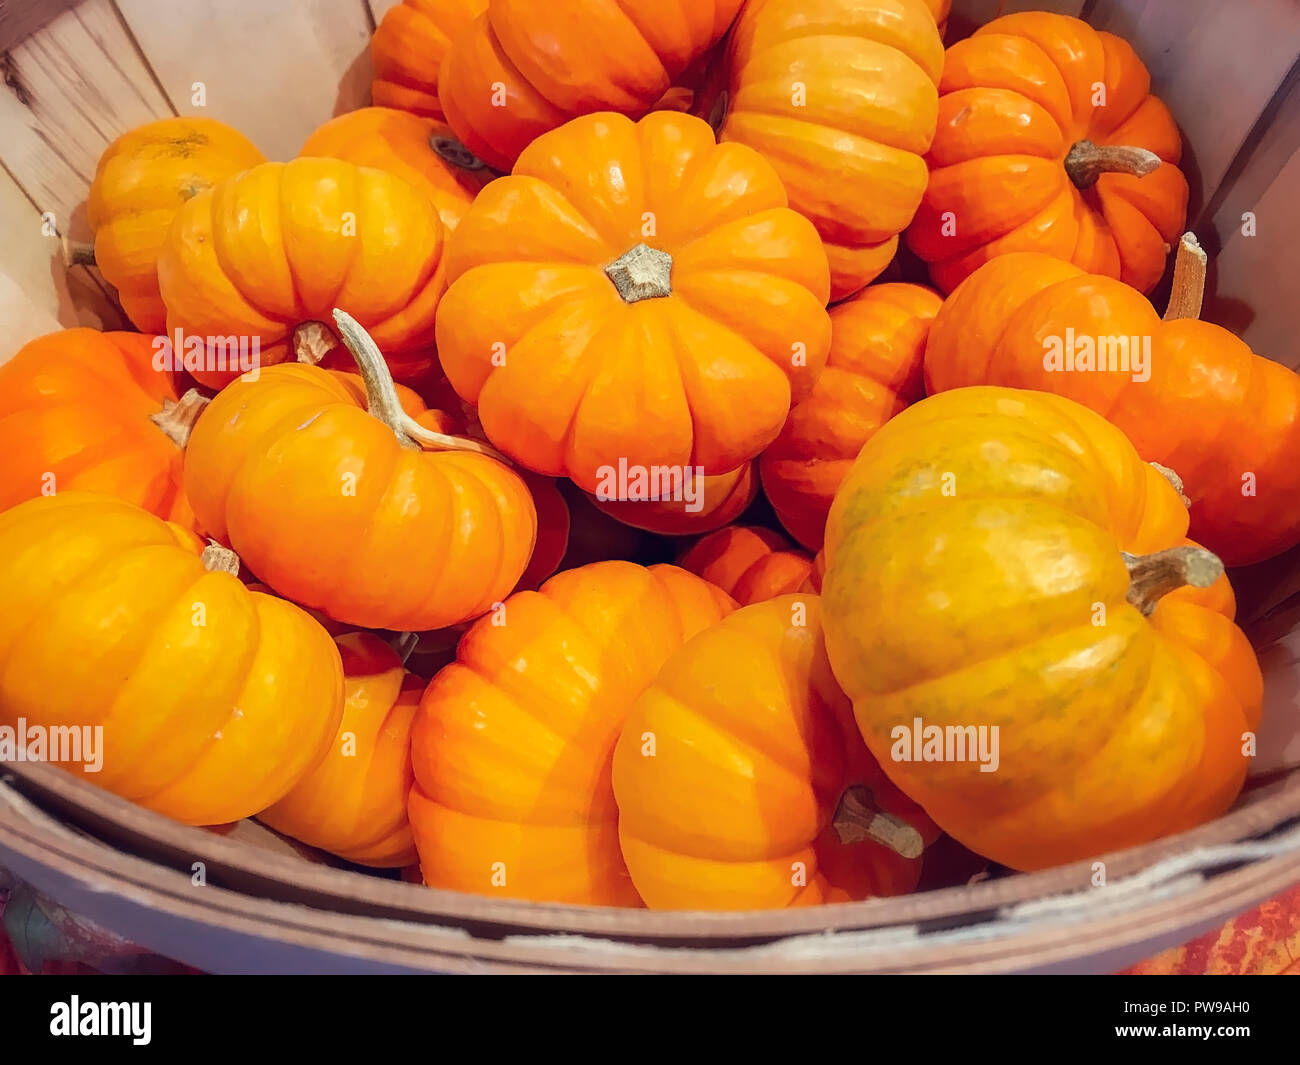 Wooden Basket Filled With a Large Group of Fresh Pumpkins - Stock Image